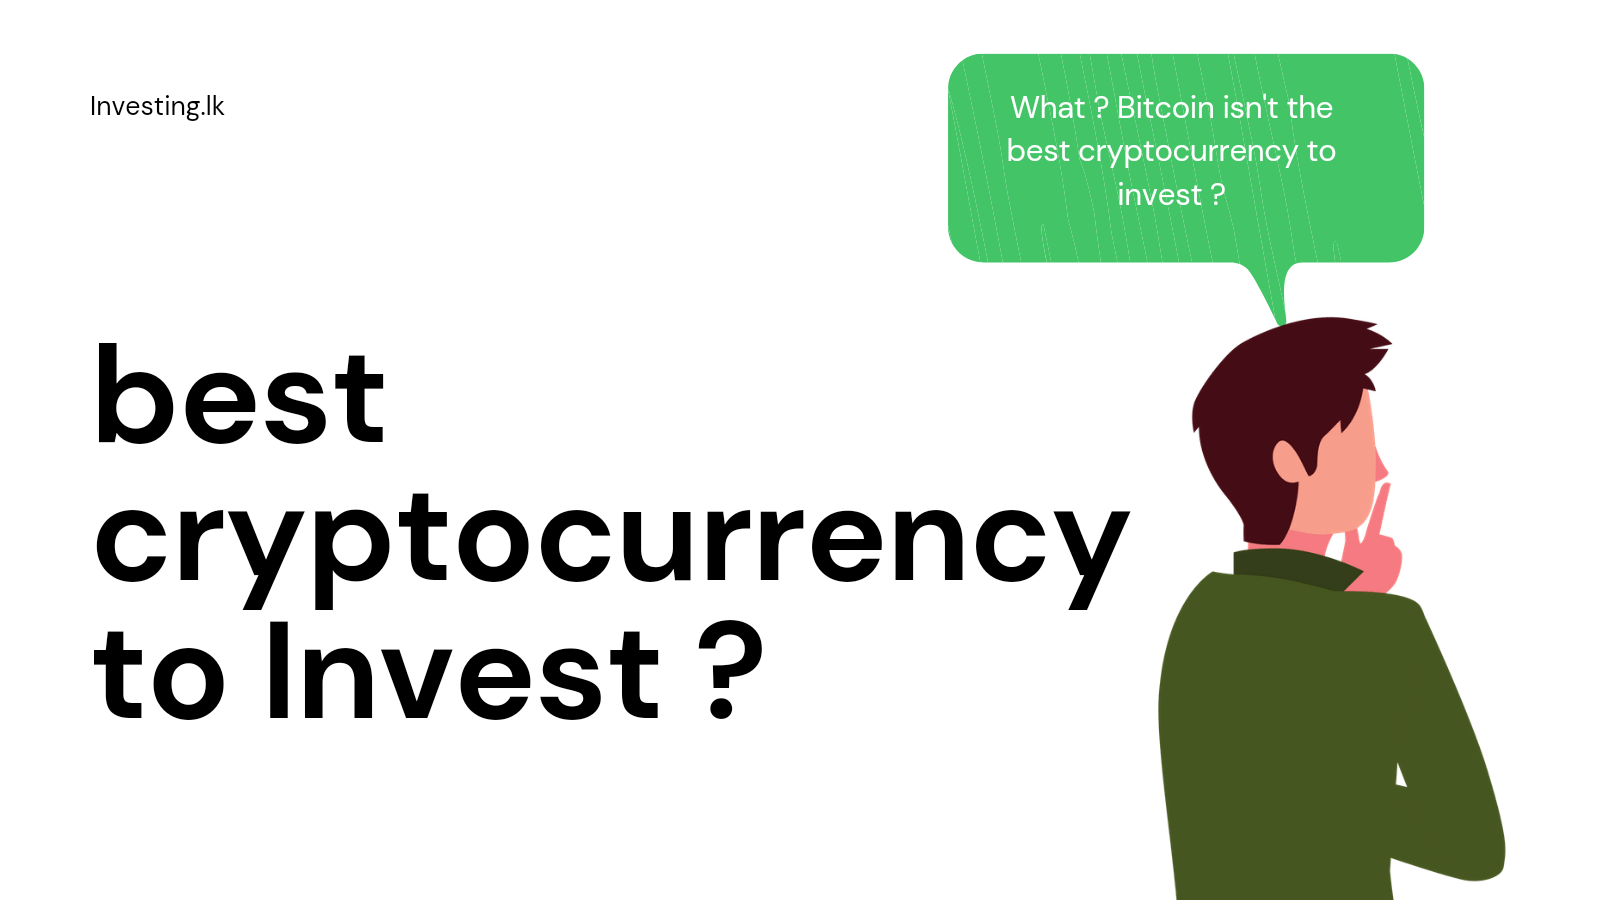 Best cryptocurrency to Invest in 2021-2025